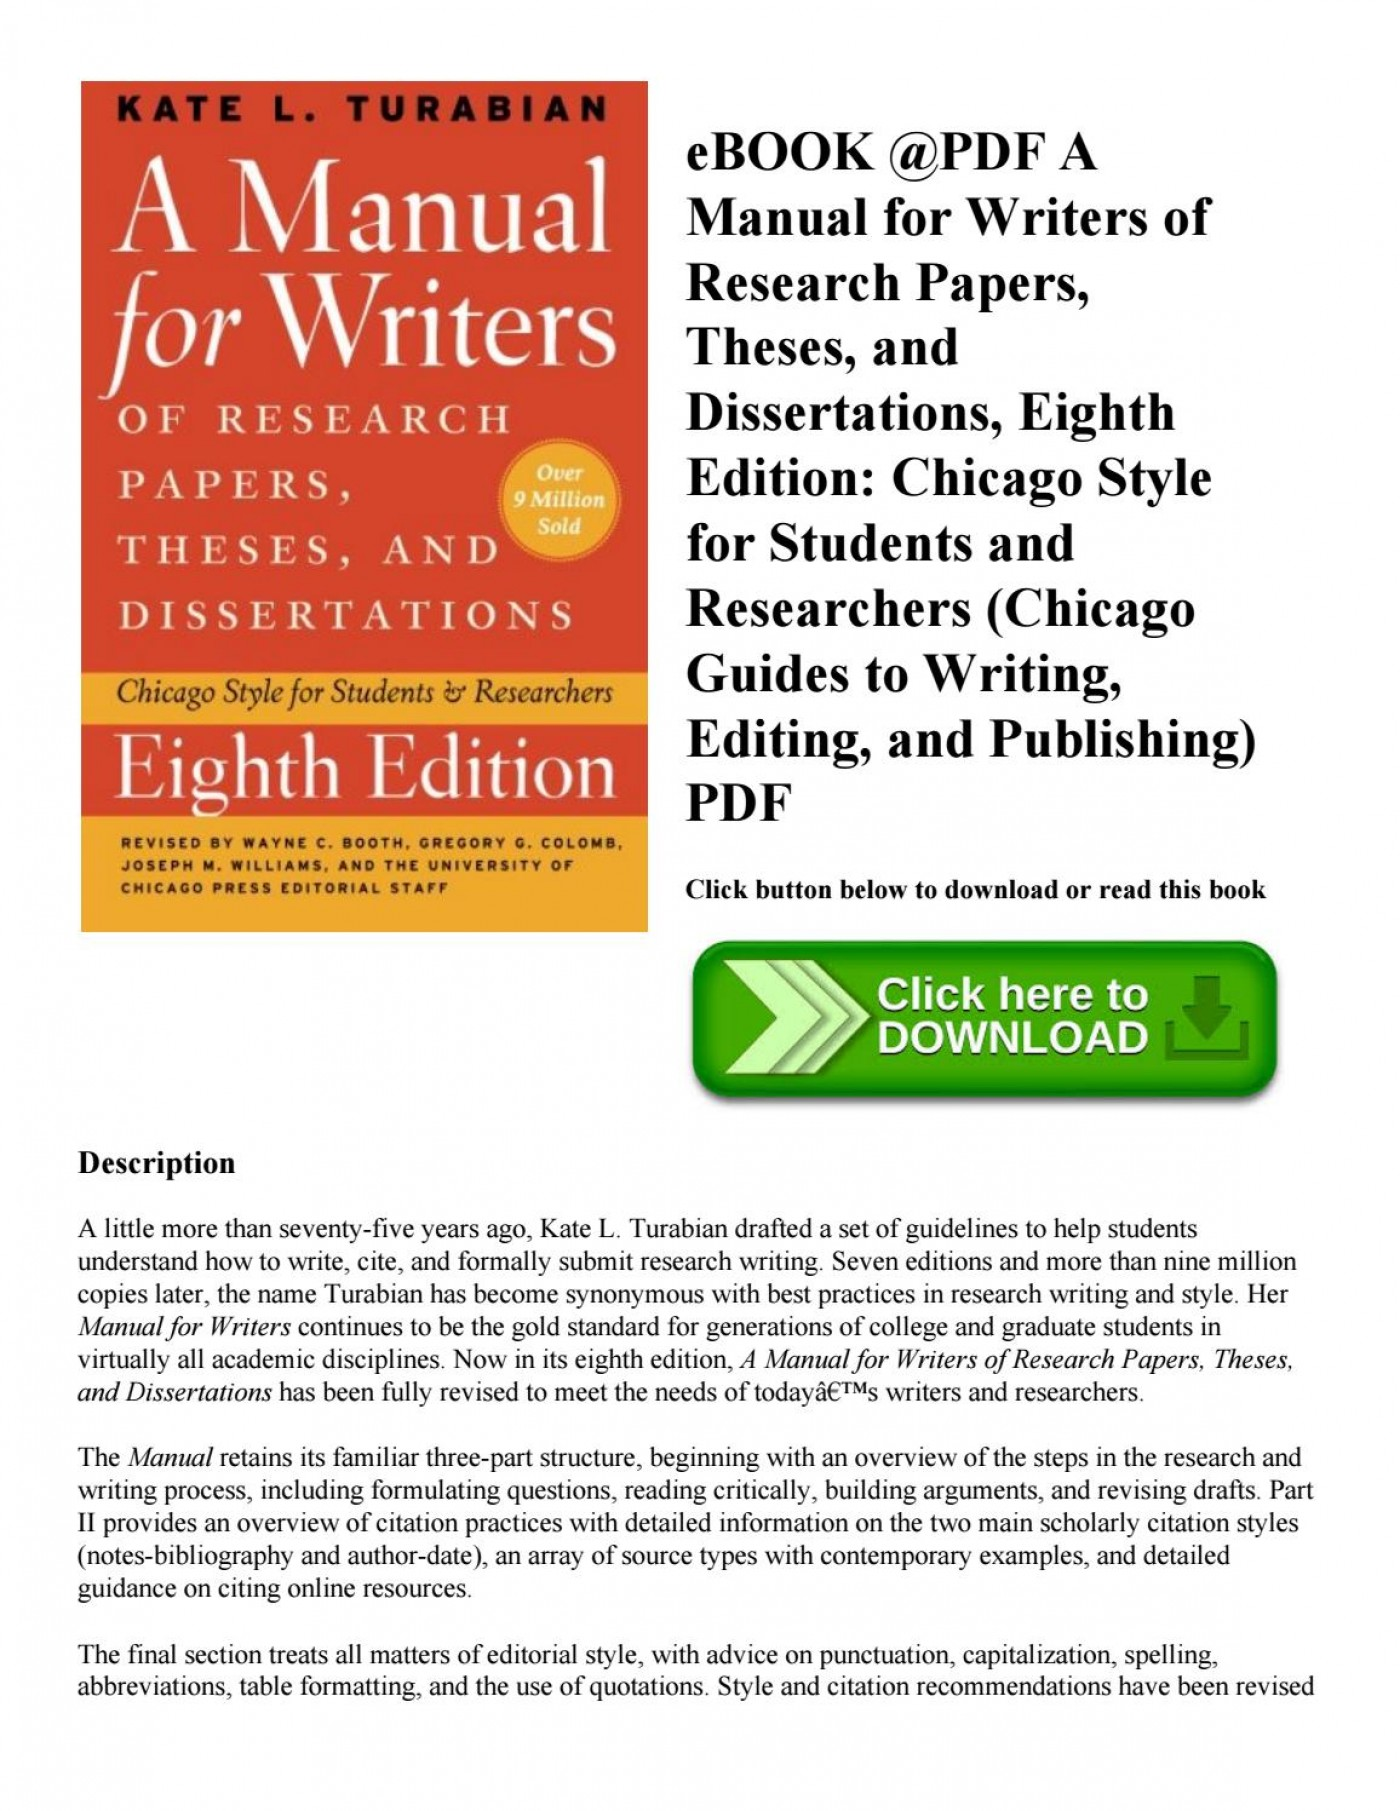 007 Manual For Writers Of Research Papers Theses And Dissertations Ebook Paper Page 1 Unbelievable A 1400